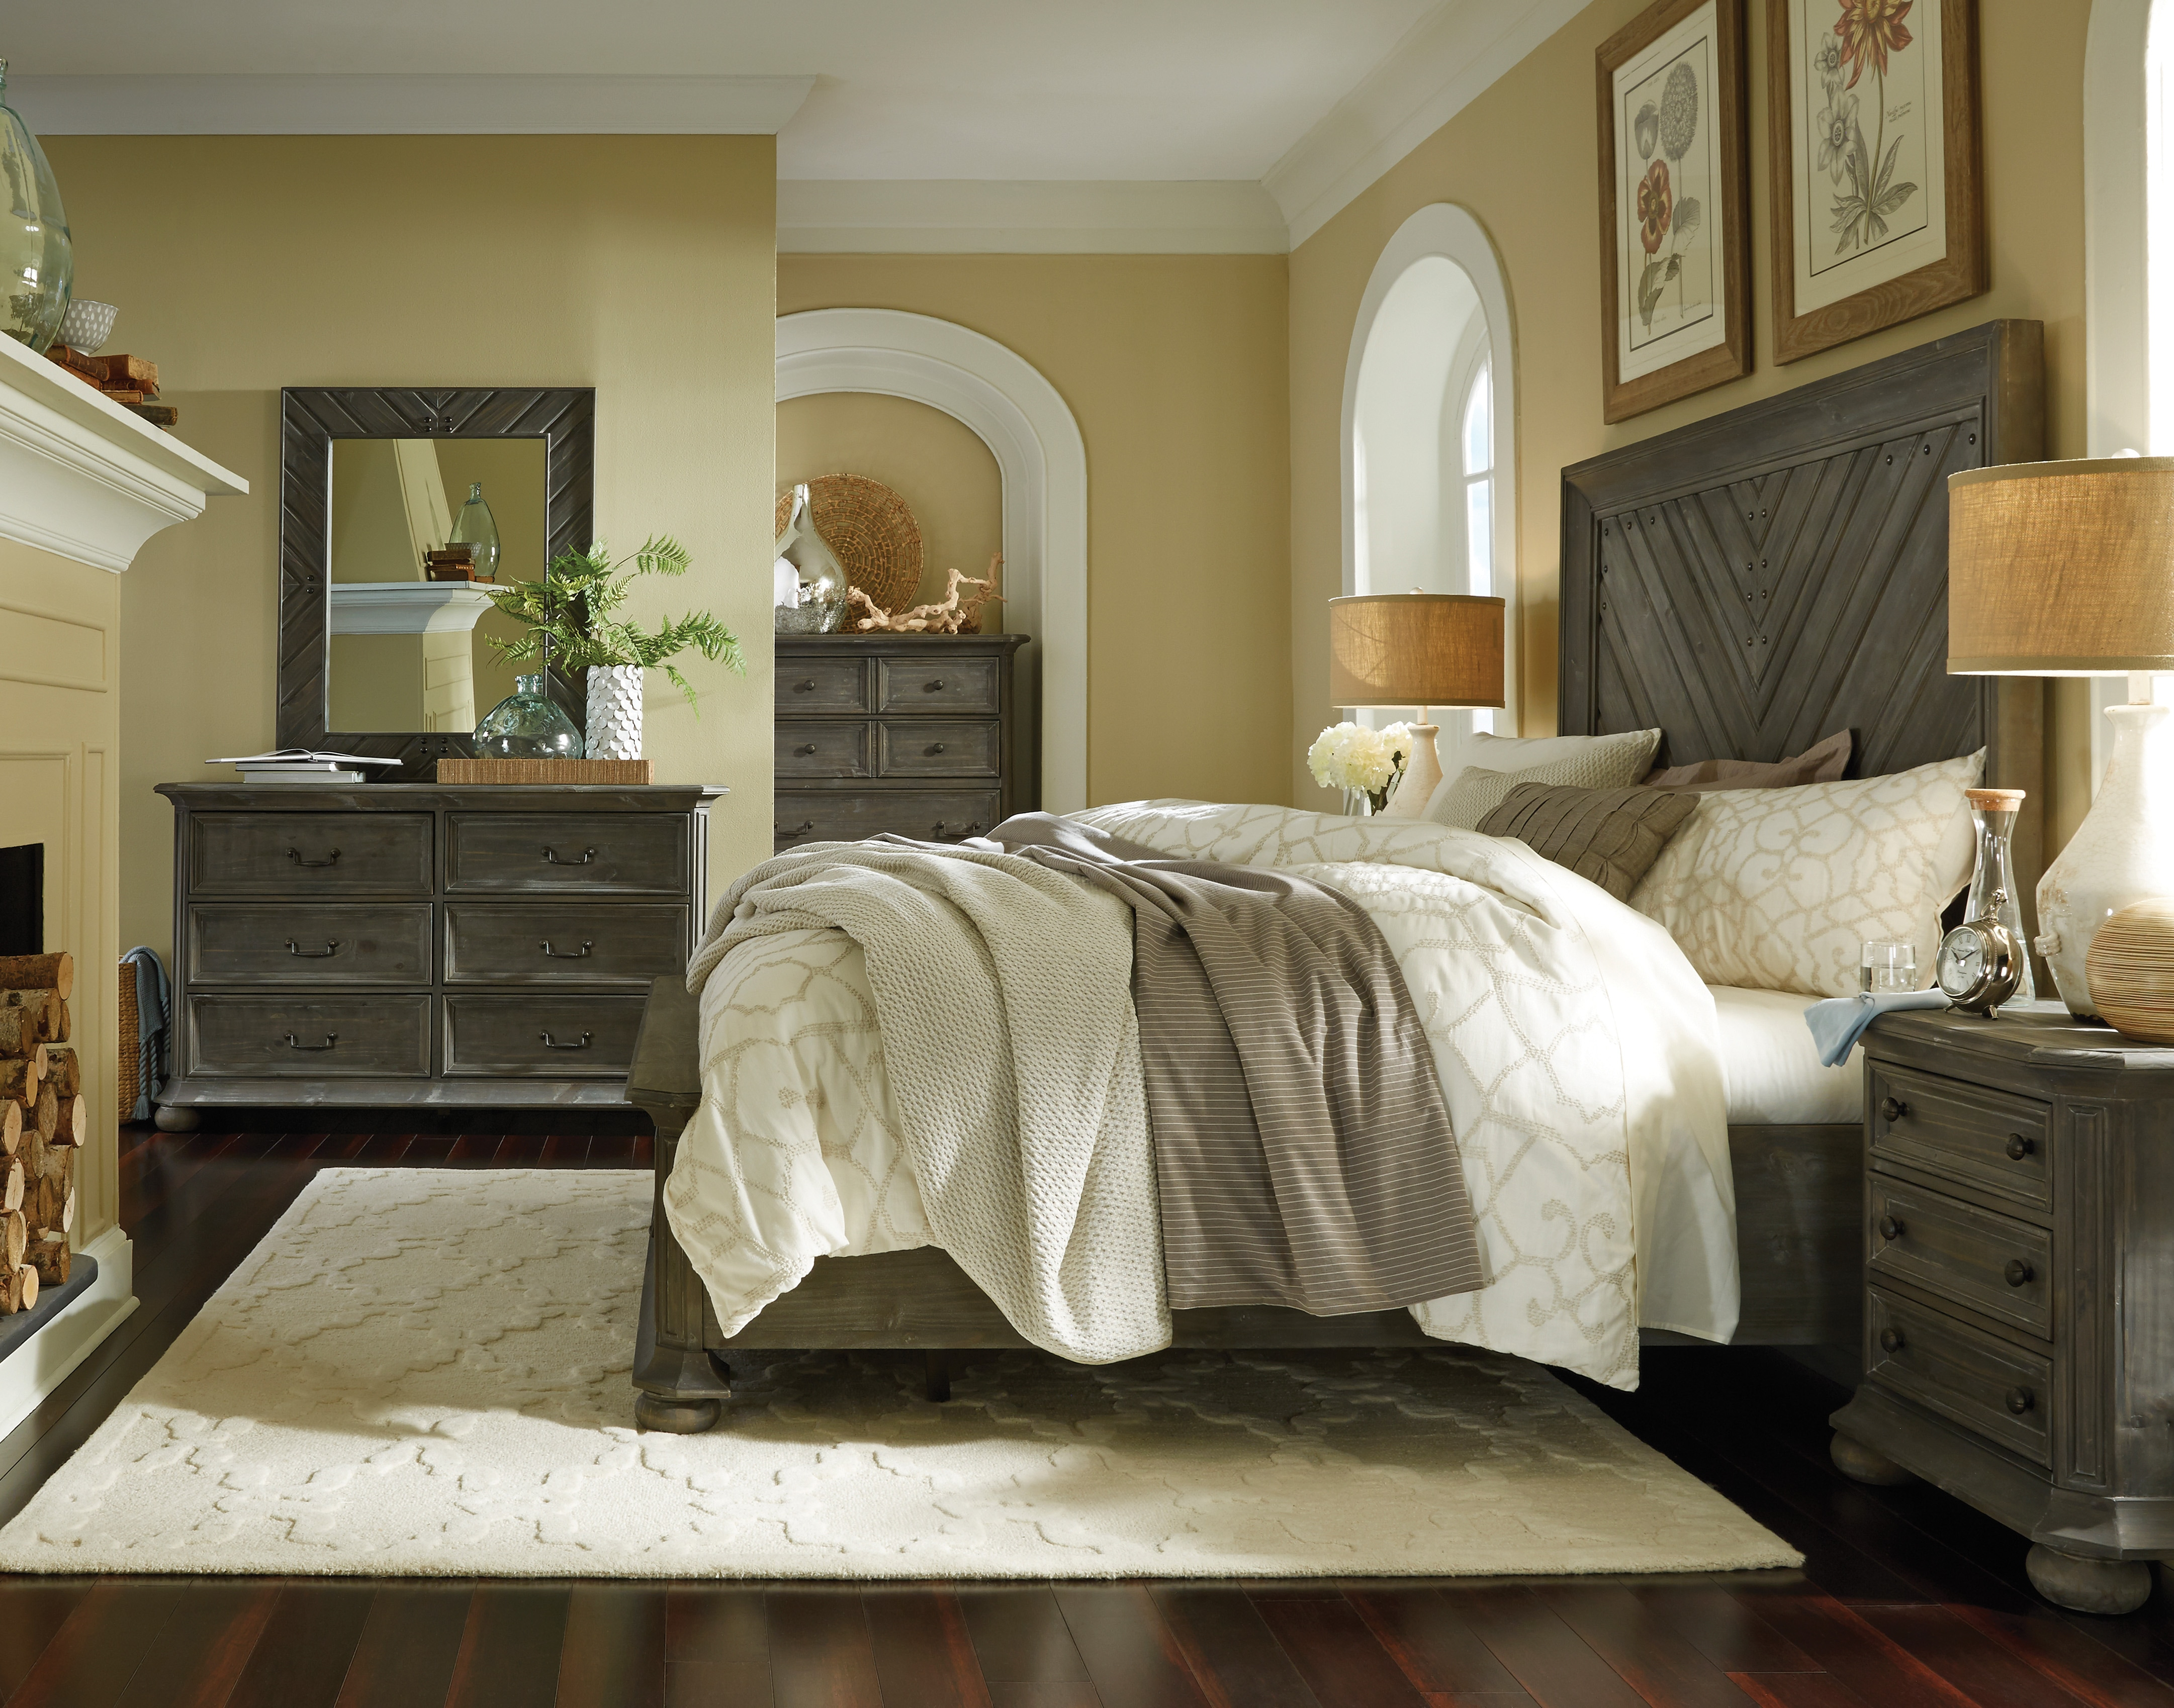 Cheswick 4-Piece Queen Bedroom Set - Washed Gray